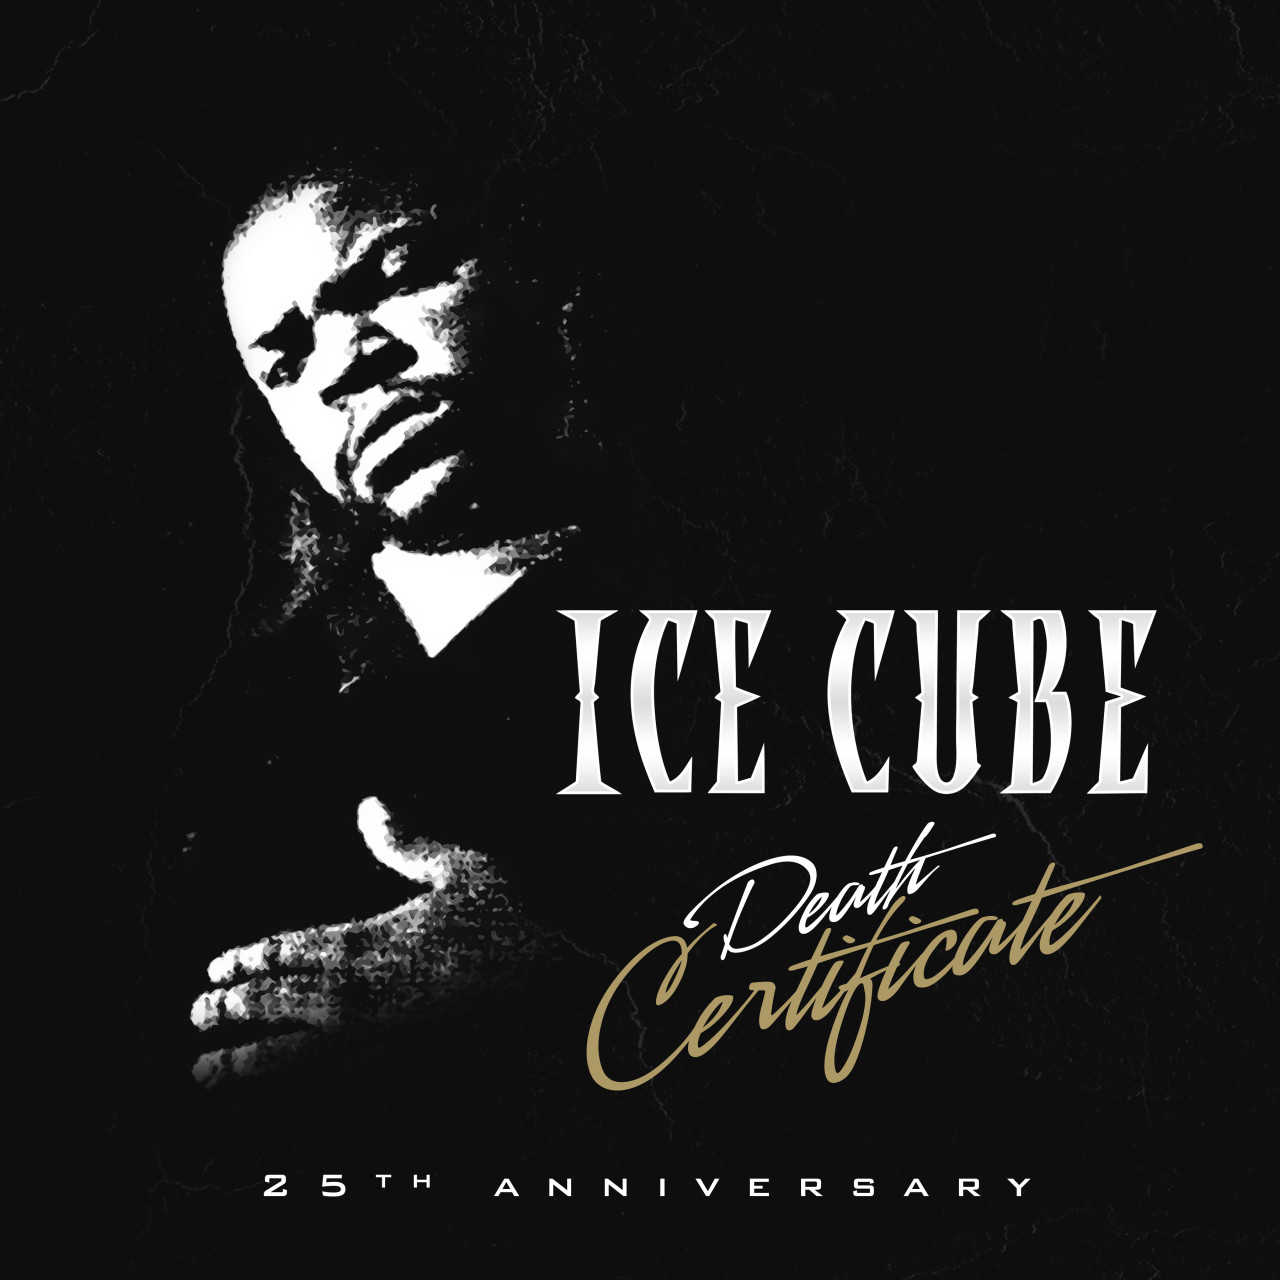 Ice Cube Cover Photo Minimalist ice cube- 25th anniersary of death cetififcate cover contest